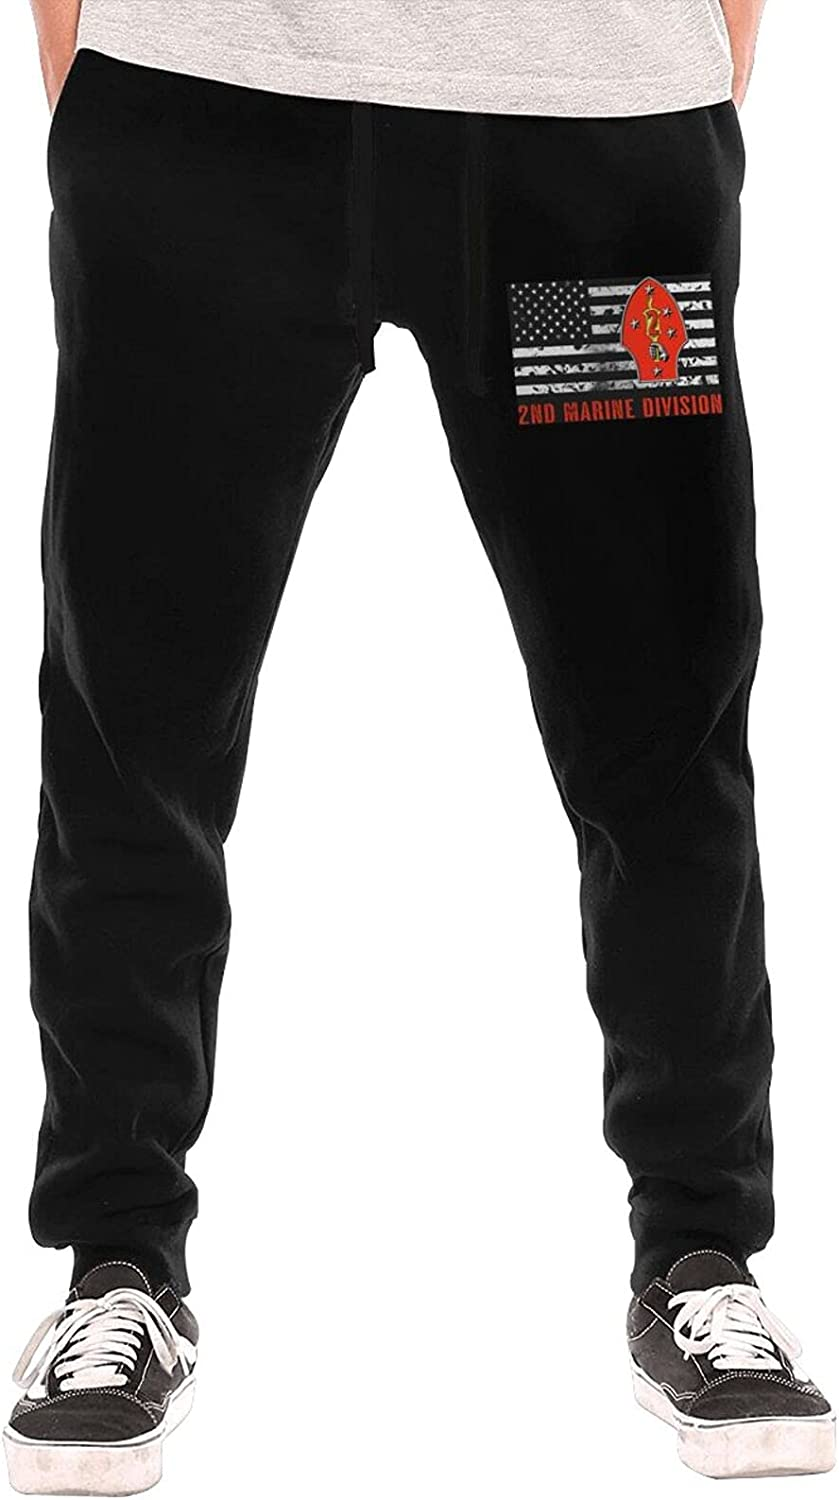 2nd Marine Division Men's Long Lightweight Sweatpants Jogg 70% OFF Outlet New products world's highest quality popular